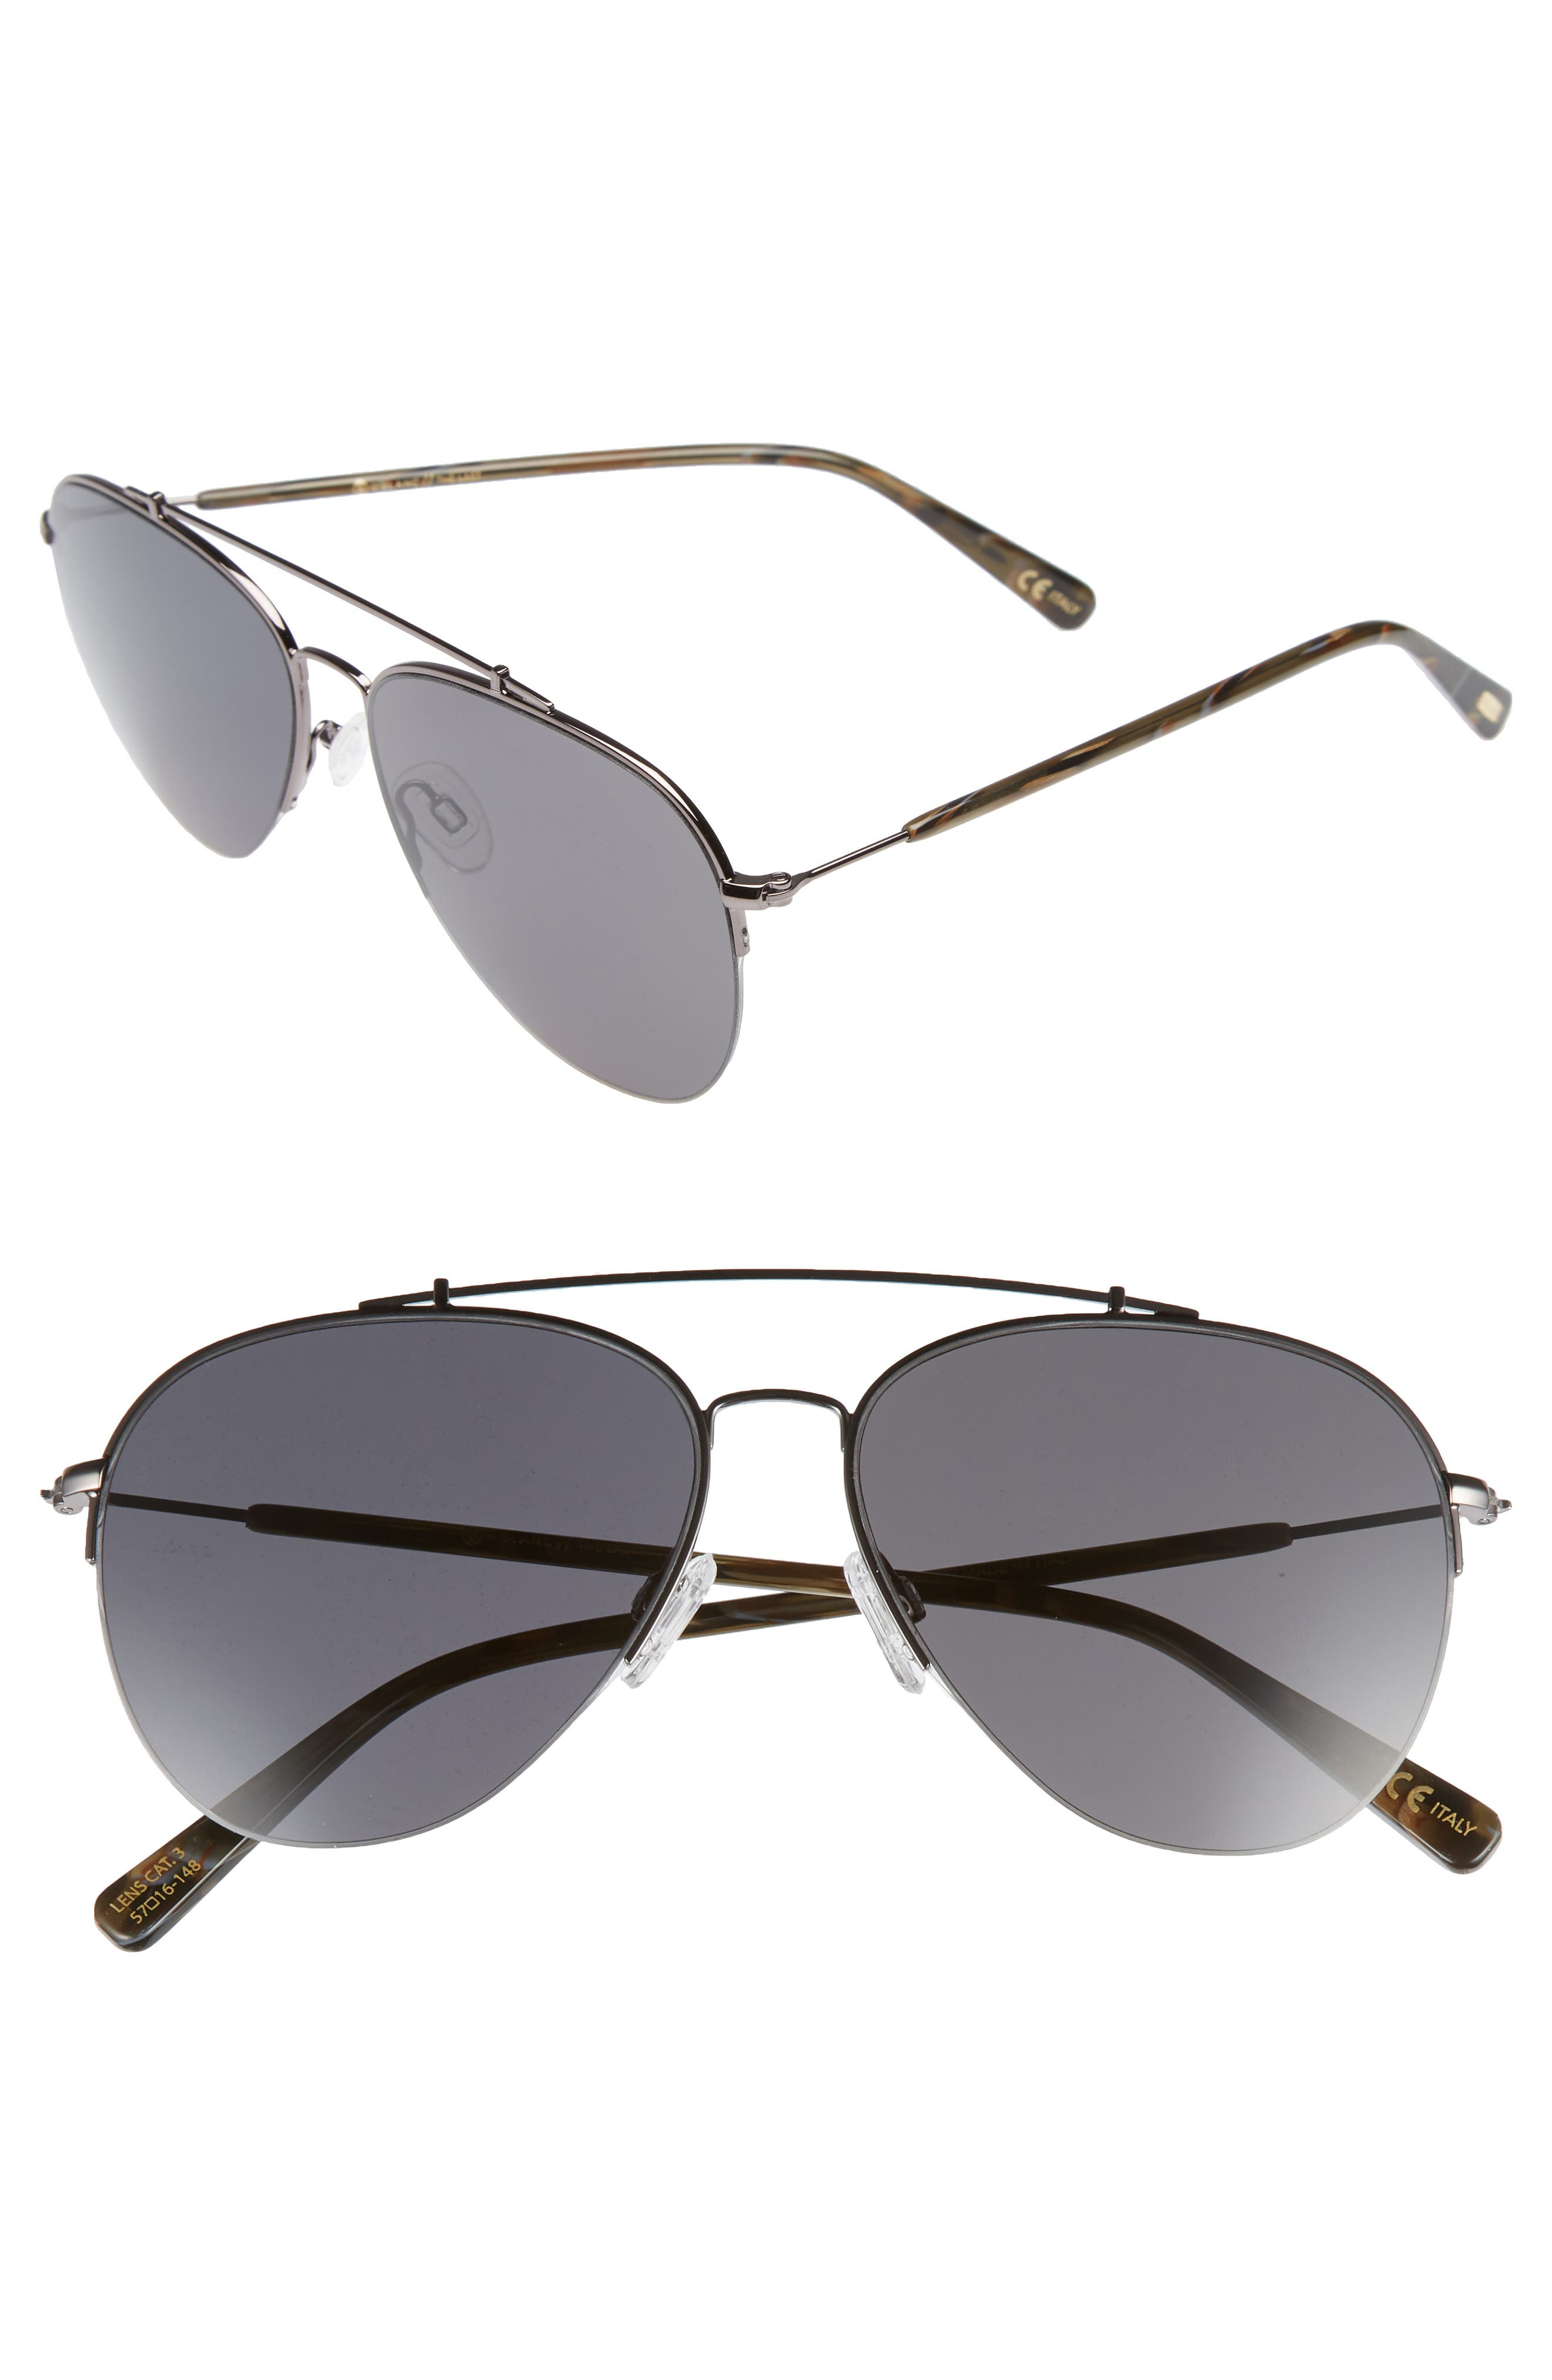 D'BLANC The Last 57mm Aviator Sunglasses,                         Main,                         color, 001